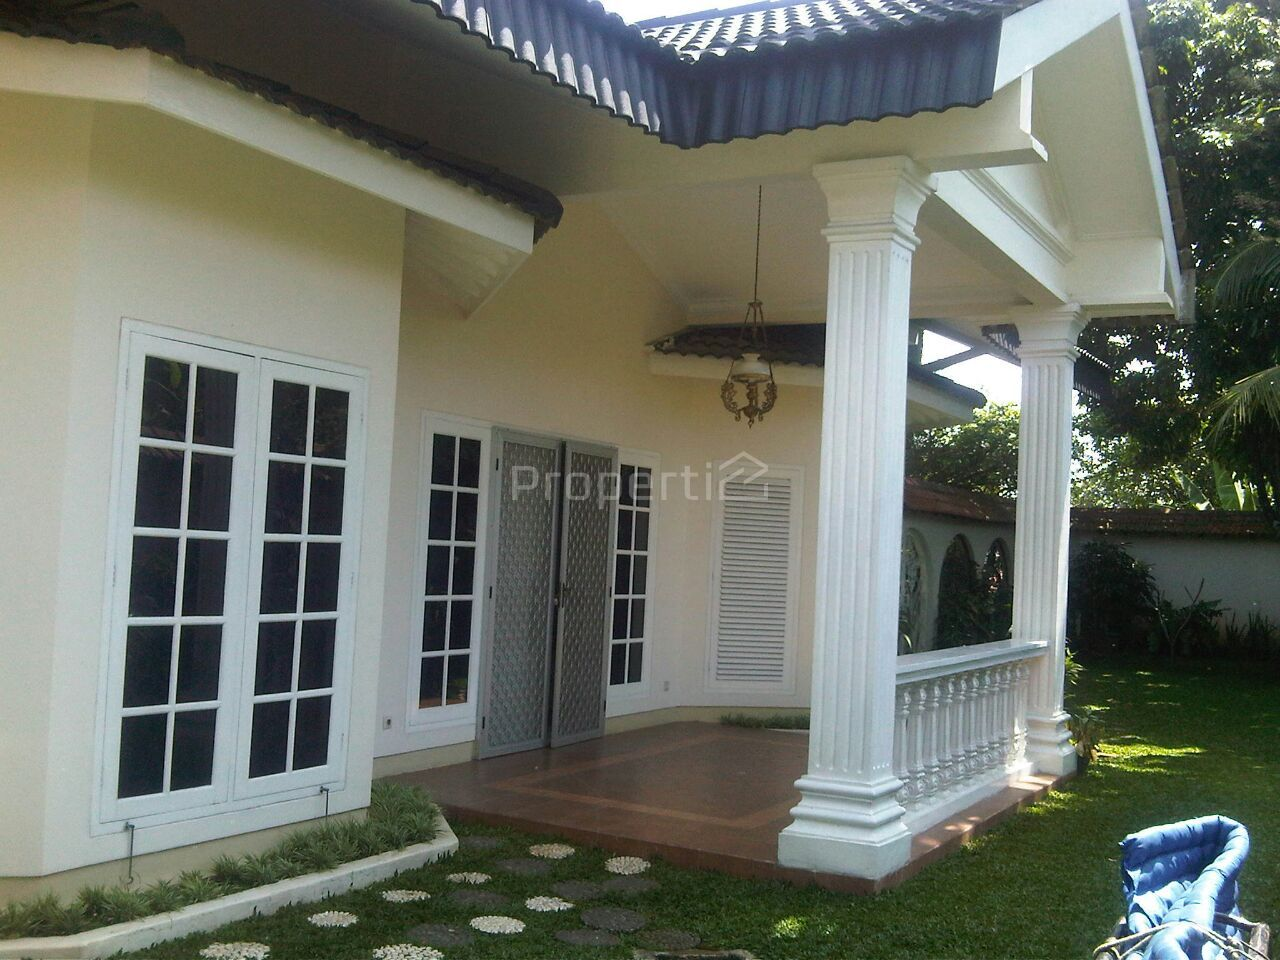 Luxury House with Swimming Pool in Cinere, Kota Depok